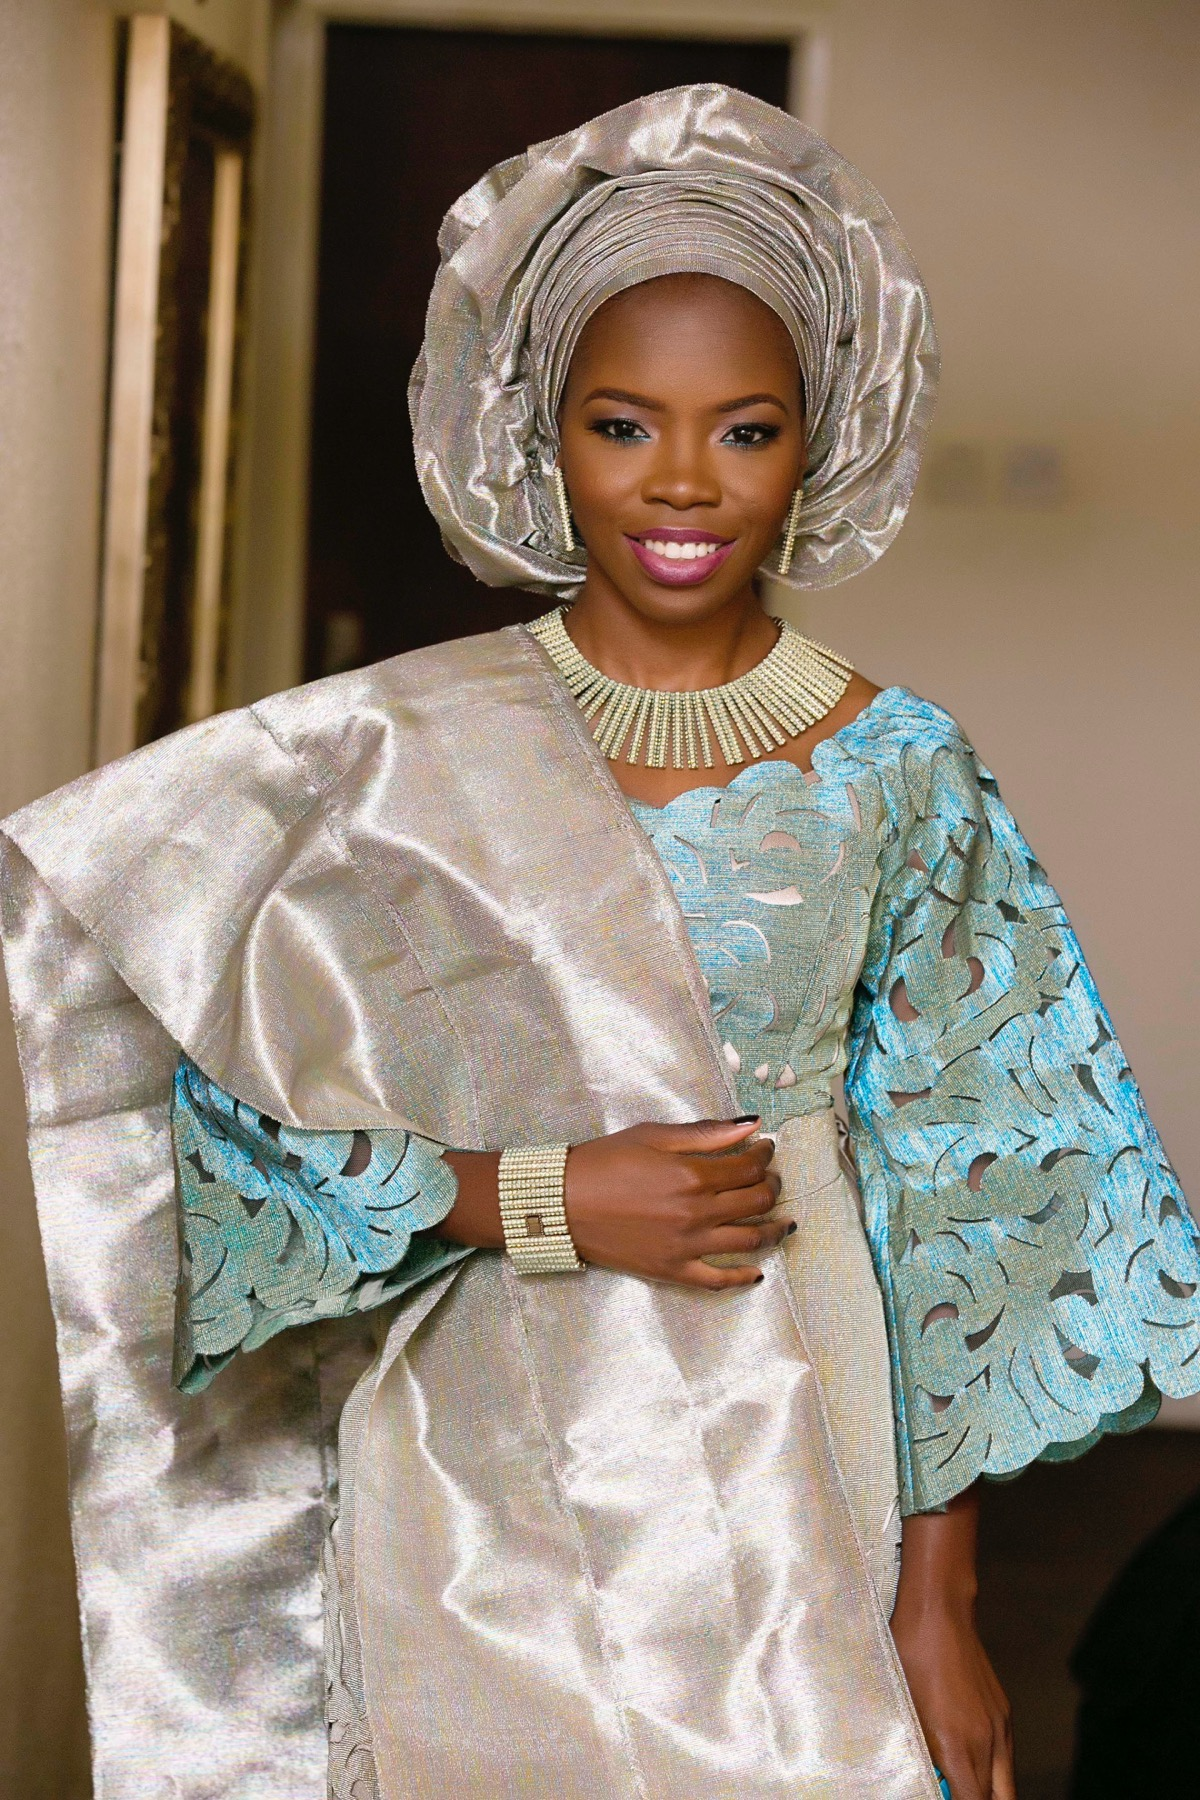 Yoruba traditional wedding in lagos nigeria slam2014 for Nigerian traditional wedding dresses pictures